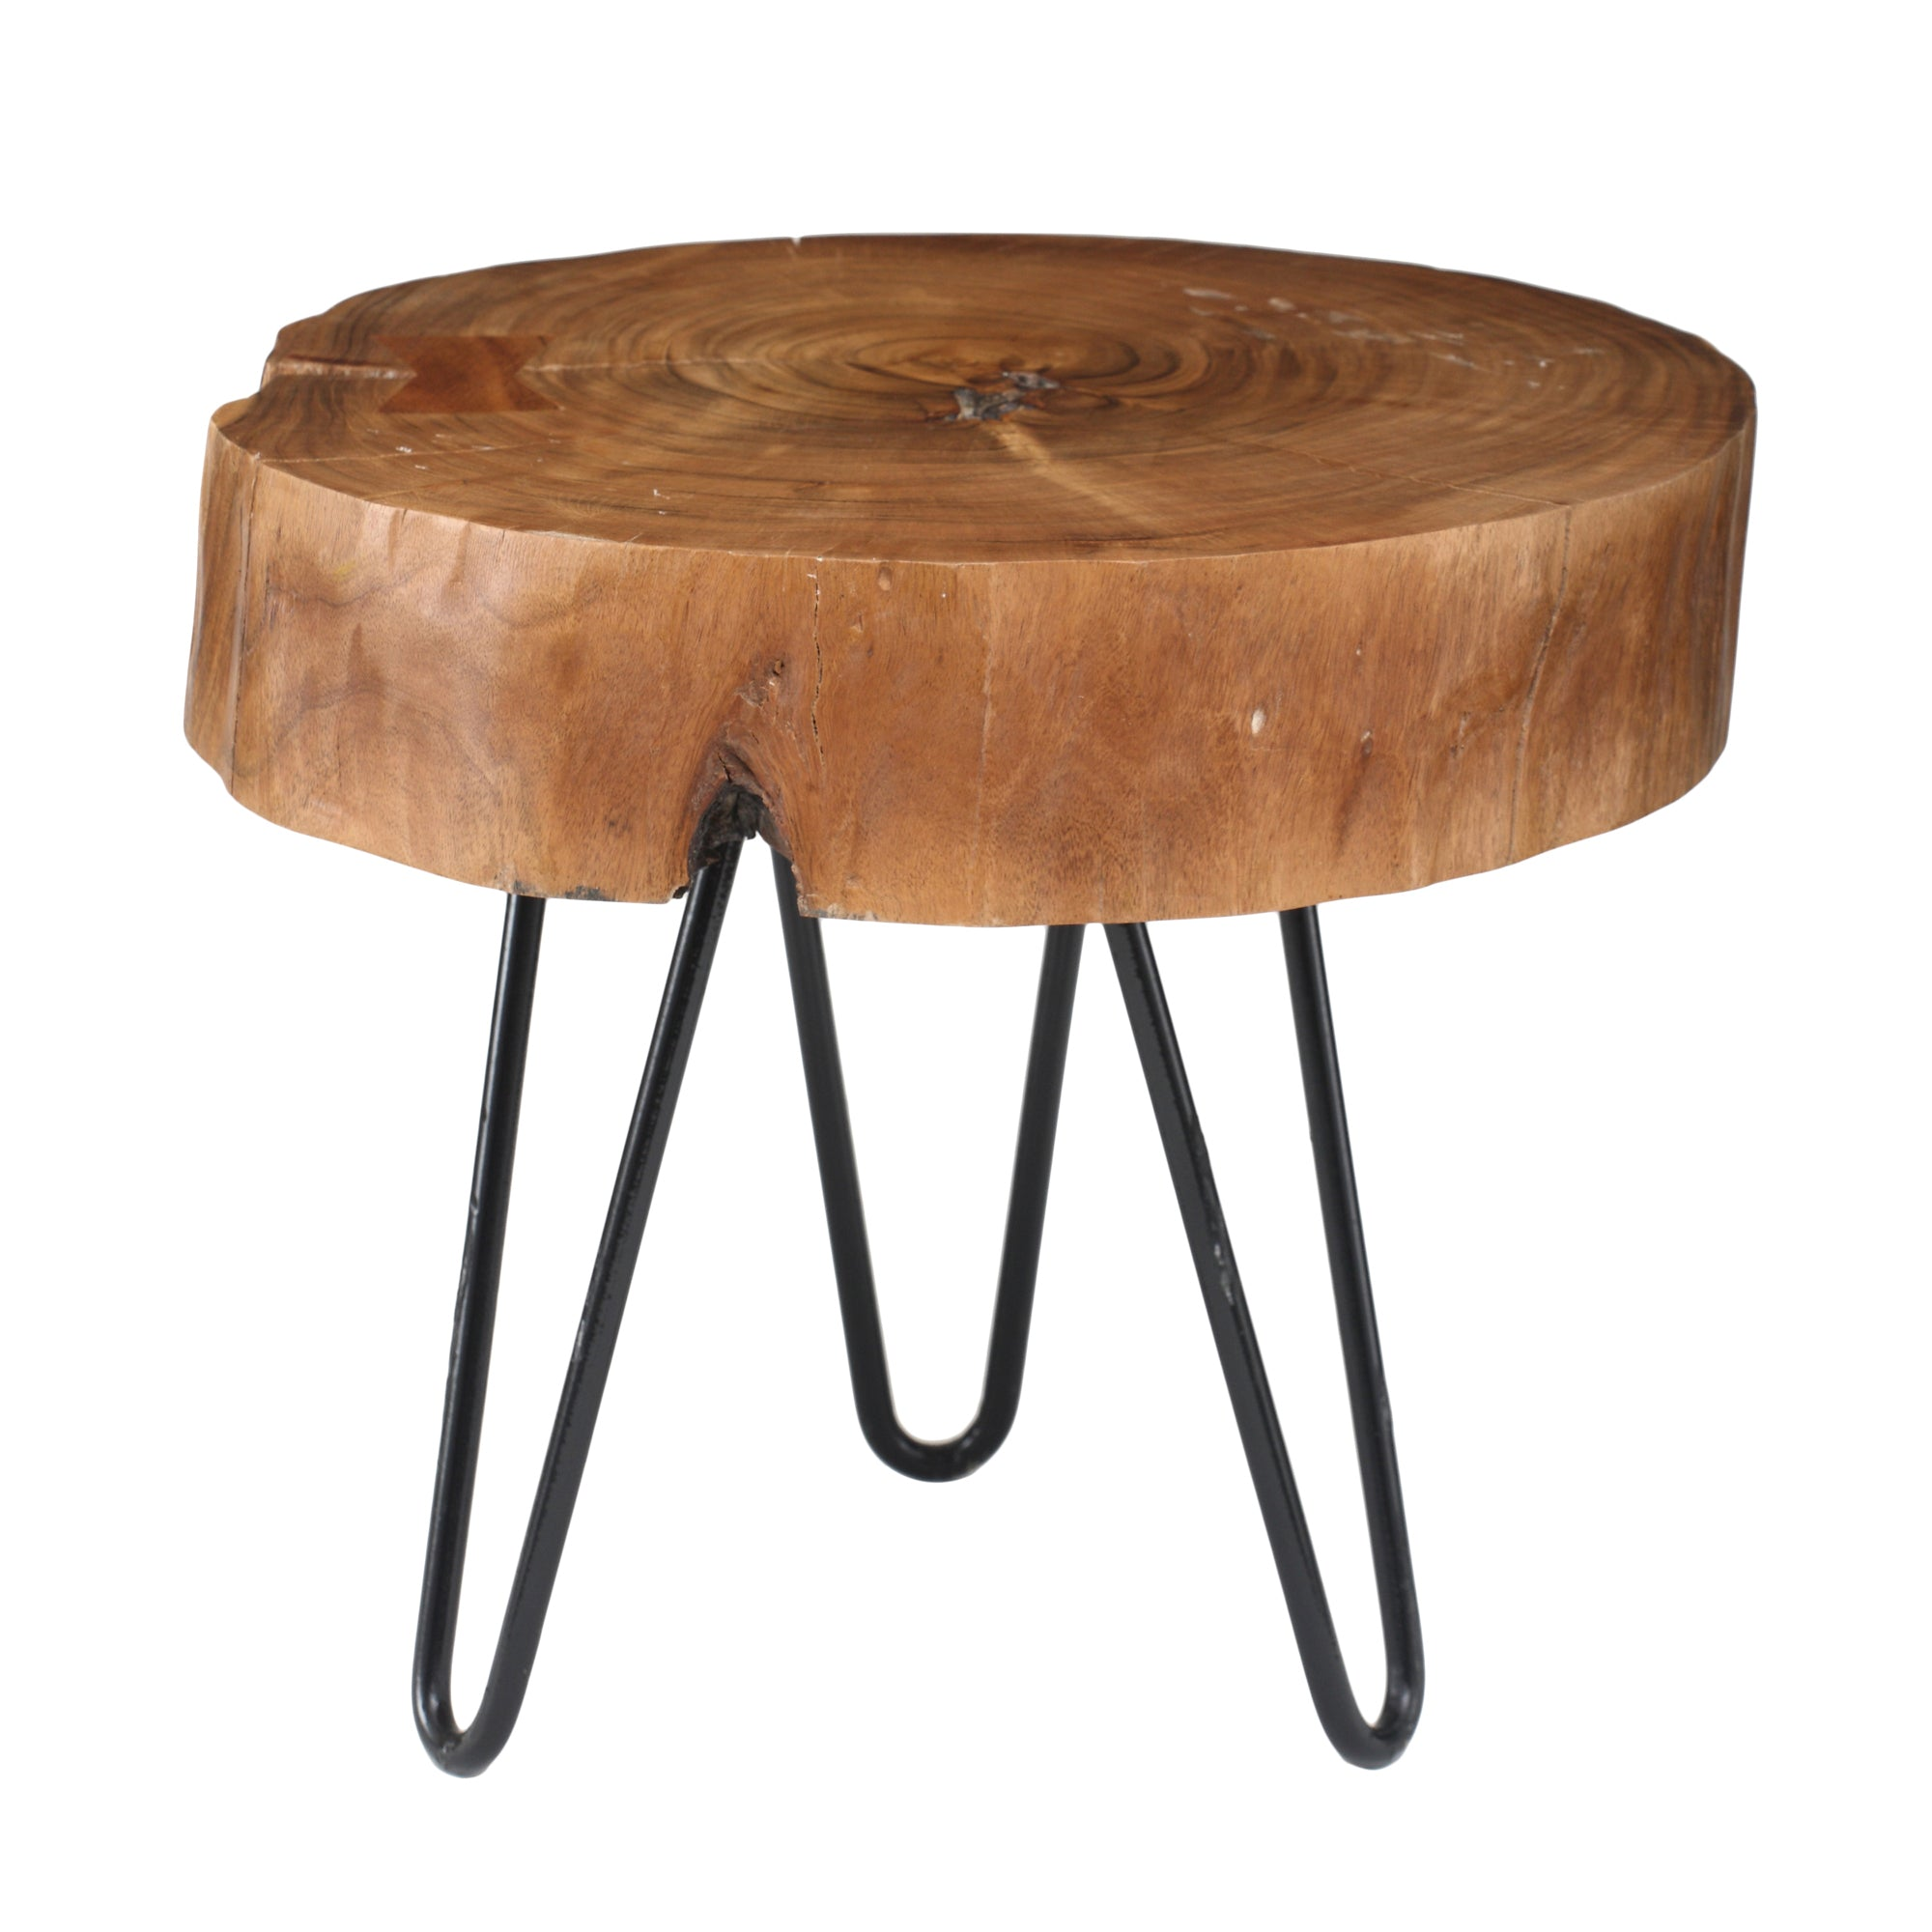 wood and iron furniture. Acacia Wood Table Small Round With Iron Leg S And Furniture O